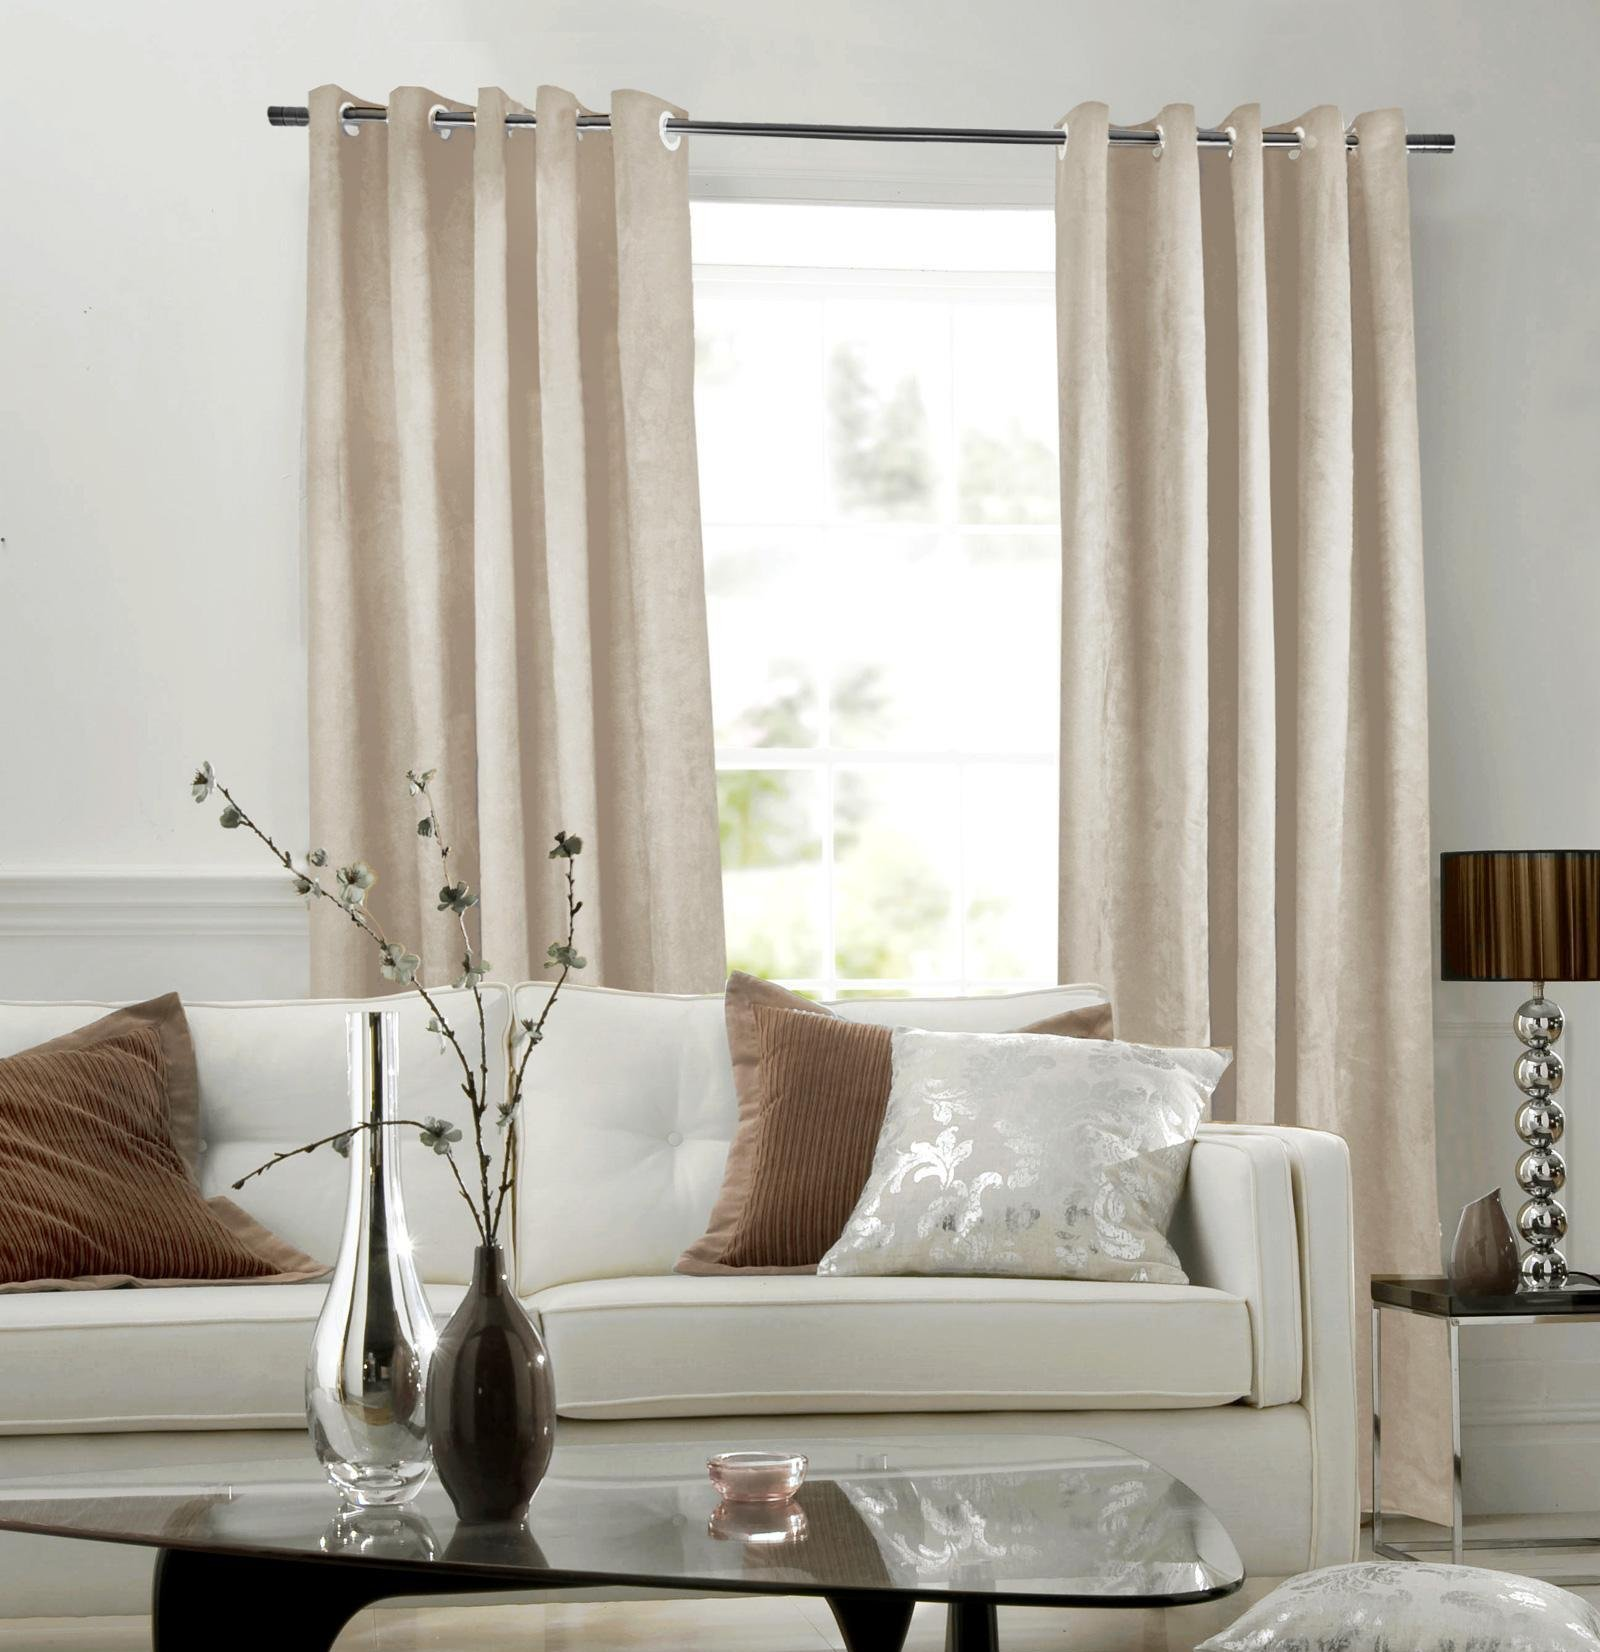 cute-drapes-for-the-living-room-with-soft-beige-bay-window-net-f-curtain-also-grommet-top-style-and-brown-pipe-hanger_brown-living-rooms-w-curtains_living-room_living-room-colors-live-chat-rooms-green